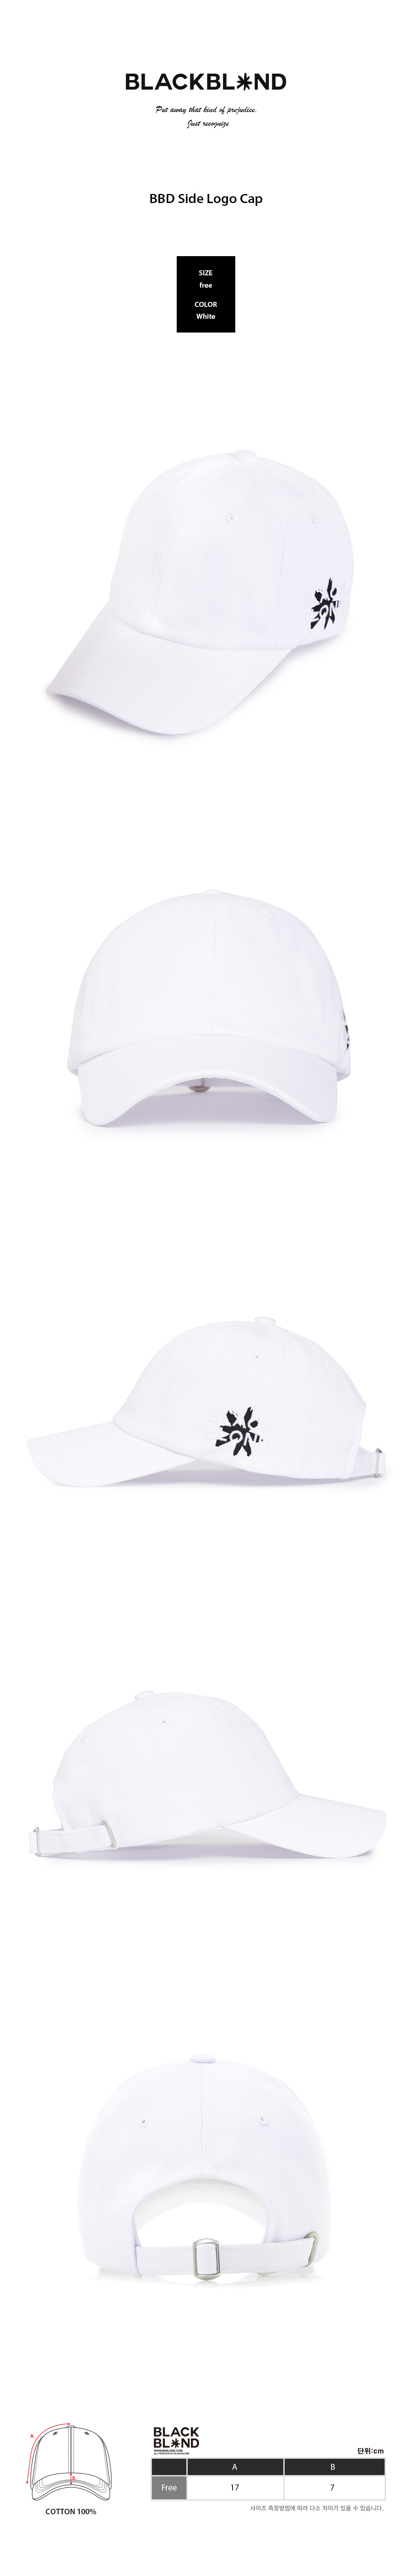 블랙블론드 BLACKBLOND - BBD Side Logo Cap (White)